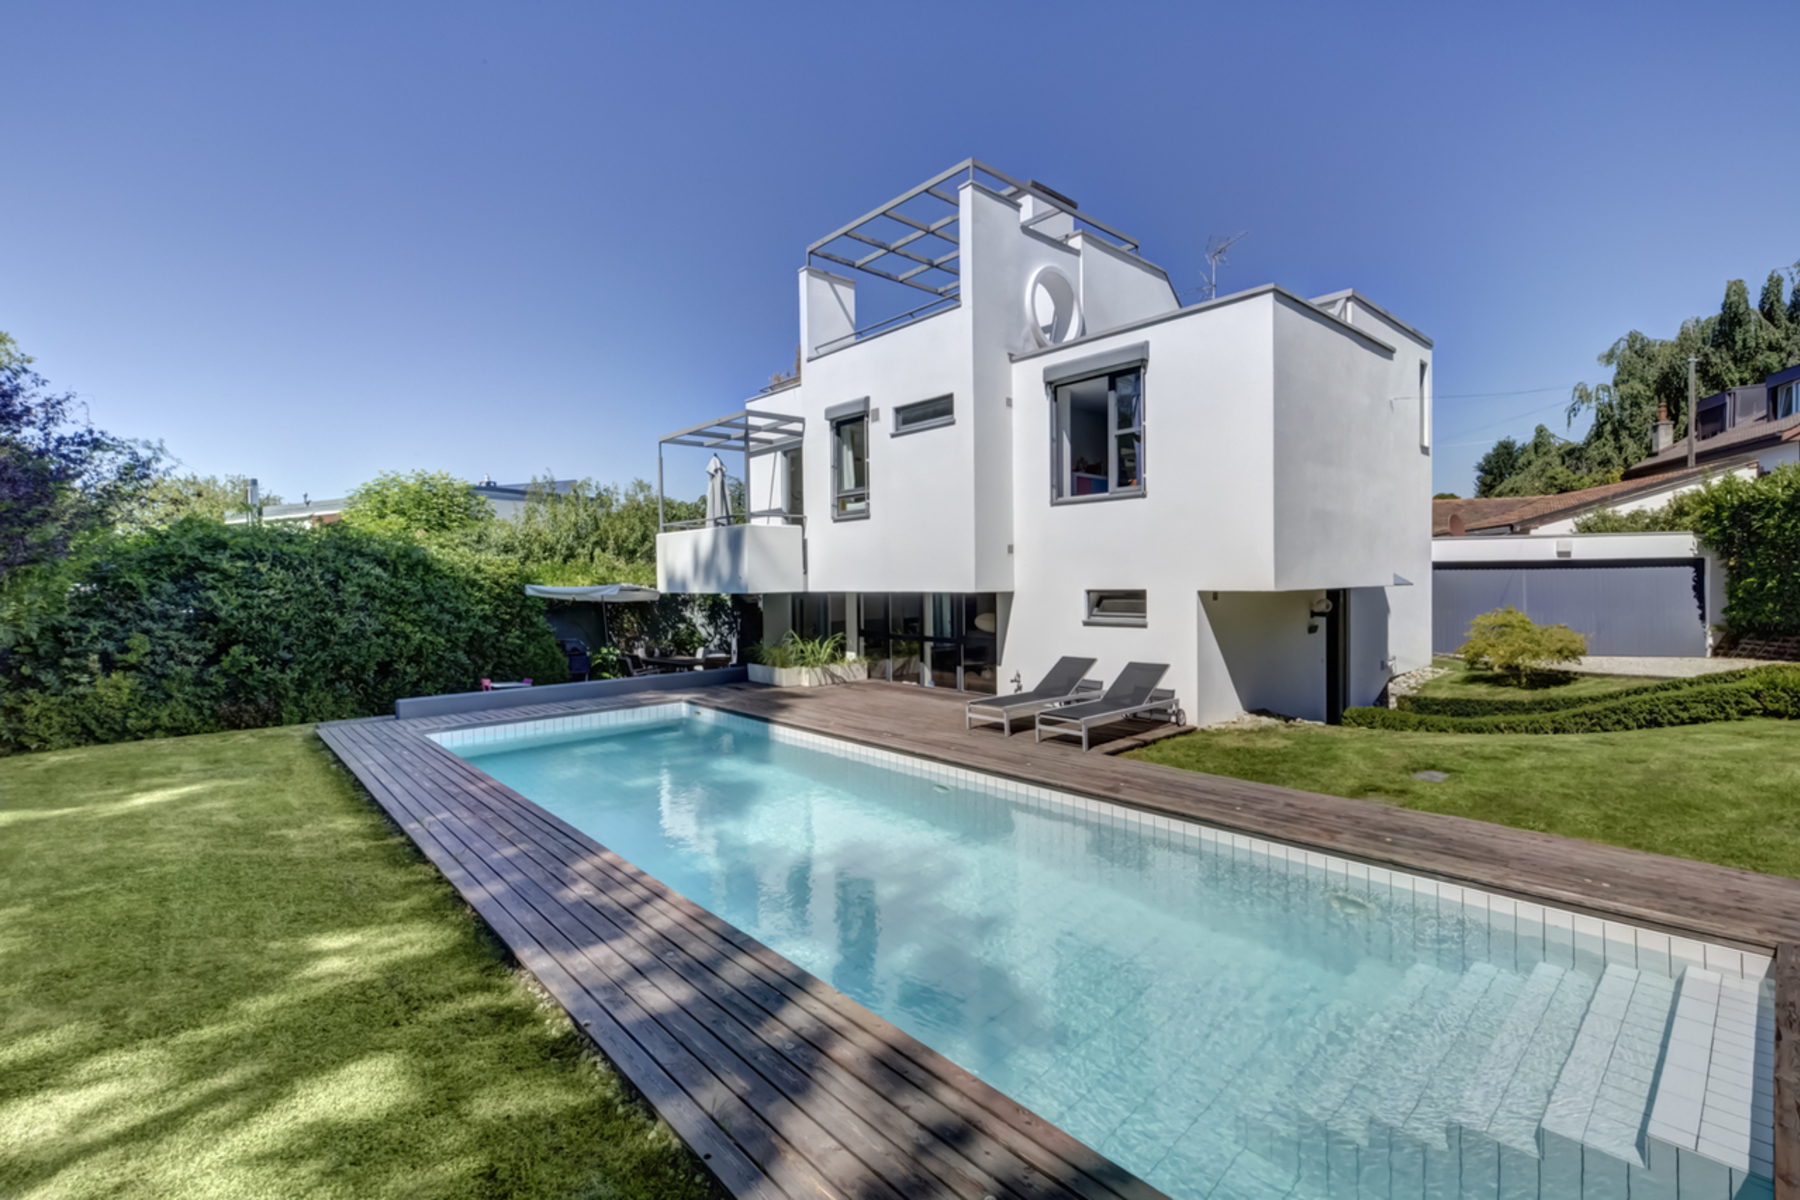 Single Family Homes のために 売買 アット Exclusive Magnificent contemporary villa with swimming pool Vésenaz Vesenaz, ジュネーブ 1222 スイス